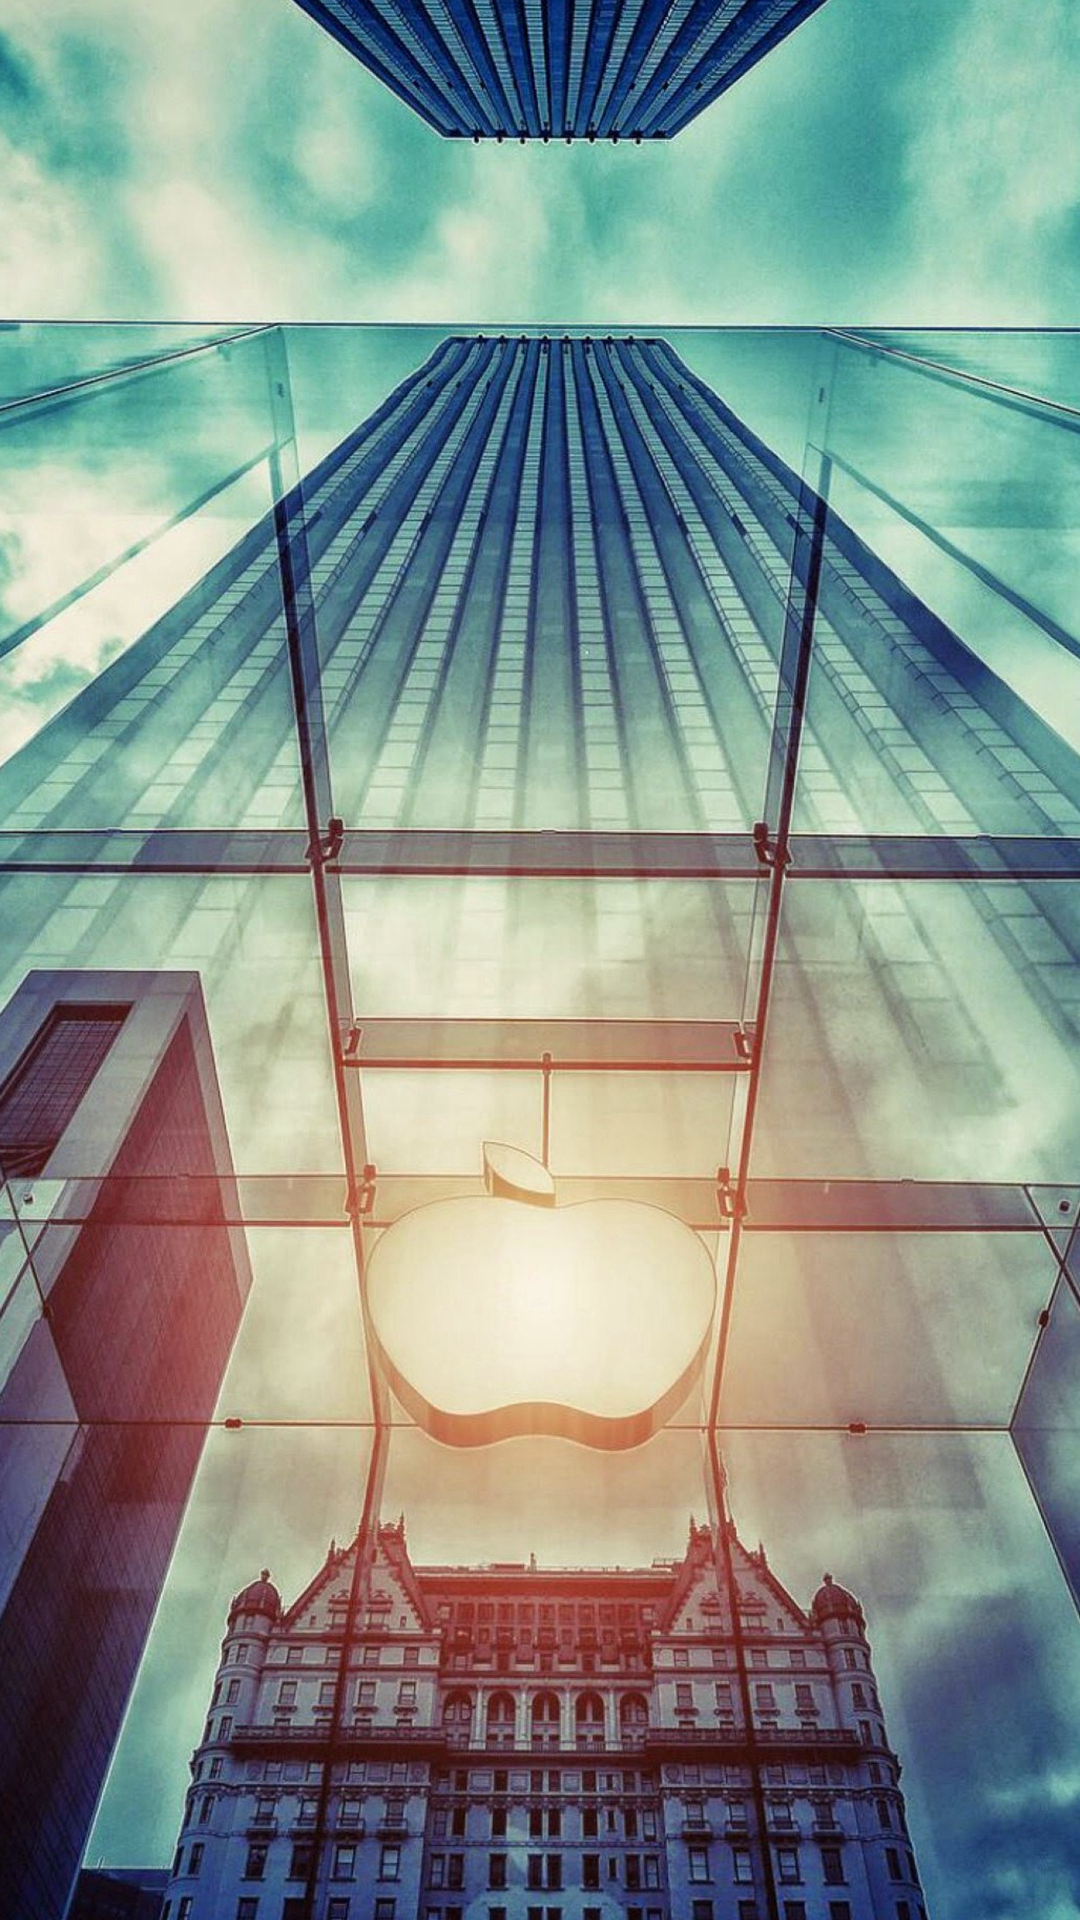 Apple Store NYC Window Reflection iPhone 6 Wallpaper Download